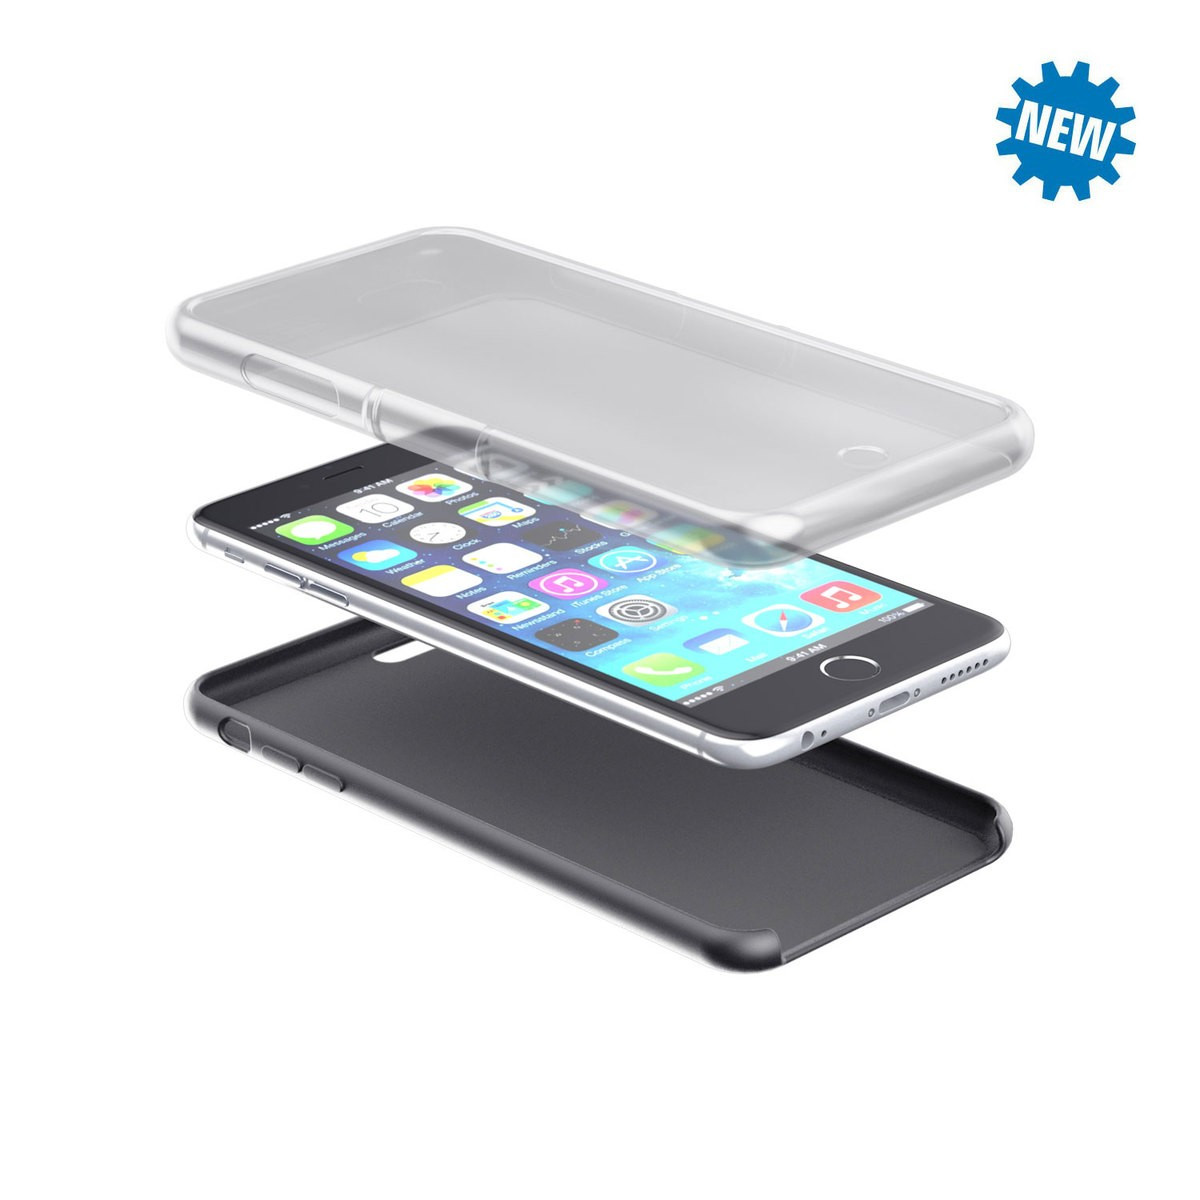 7b7ceca4240 SP GADGETS Weather Cover para iPhone 7/6S/6. Price: $13.990. Image 1.  Larger / More Photos